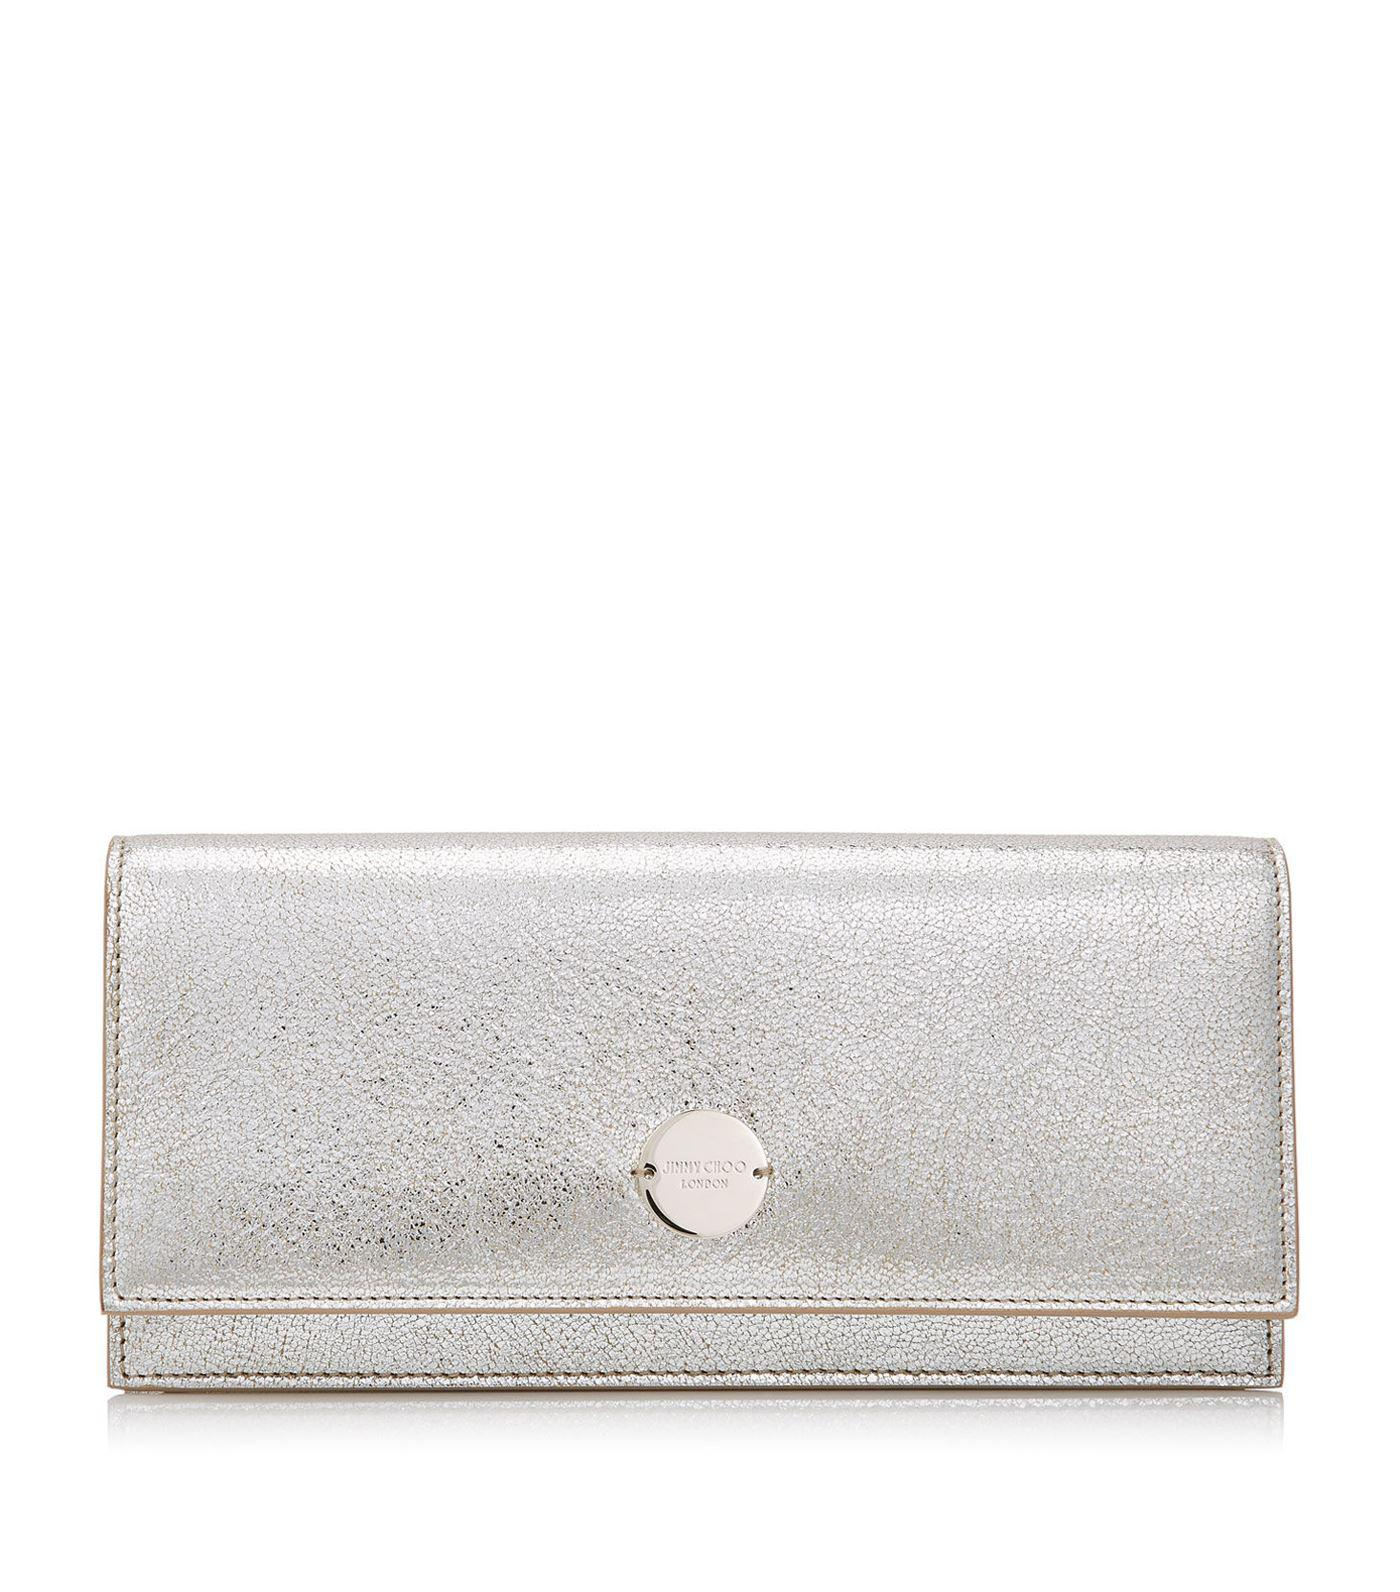 Vivien clutch - Metallic Jimmy Choo London 8dNuDDk